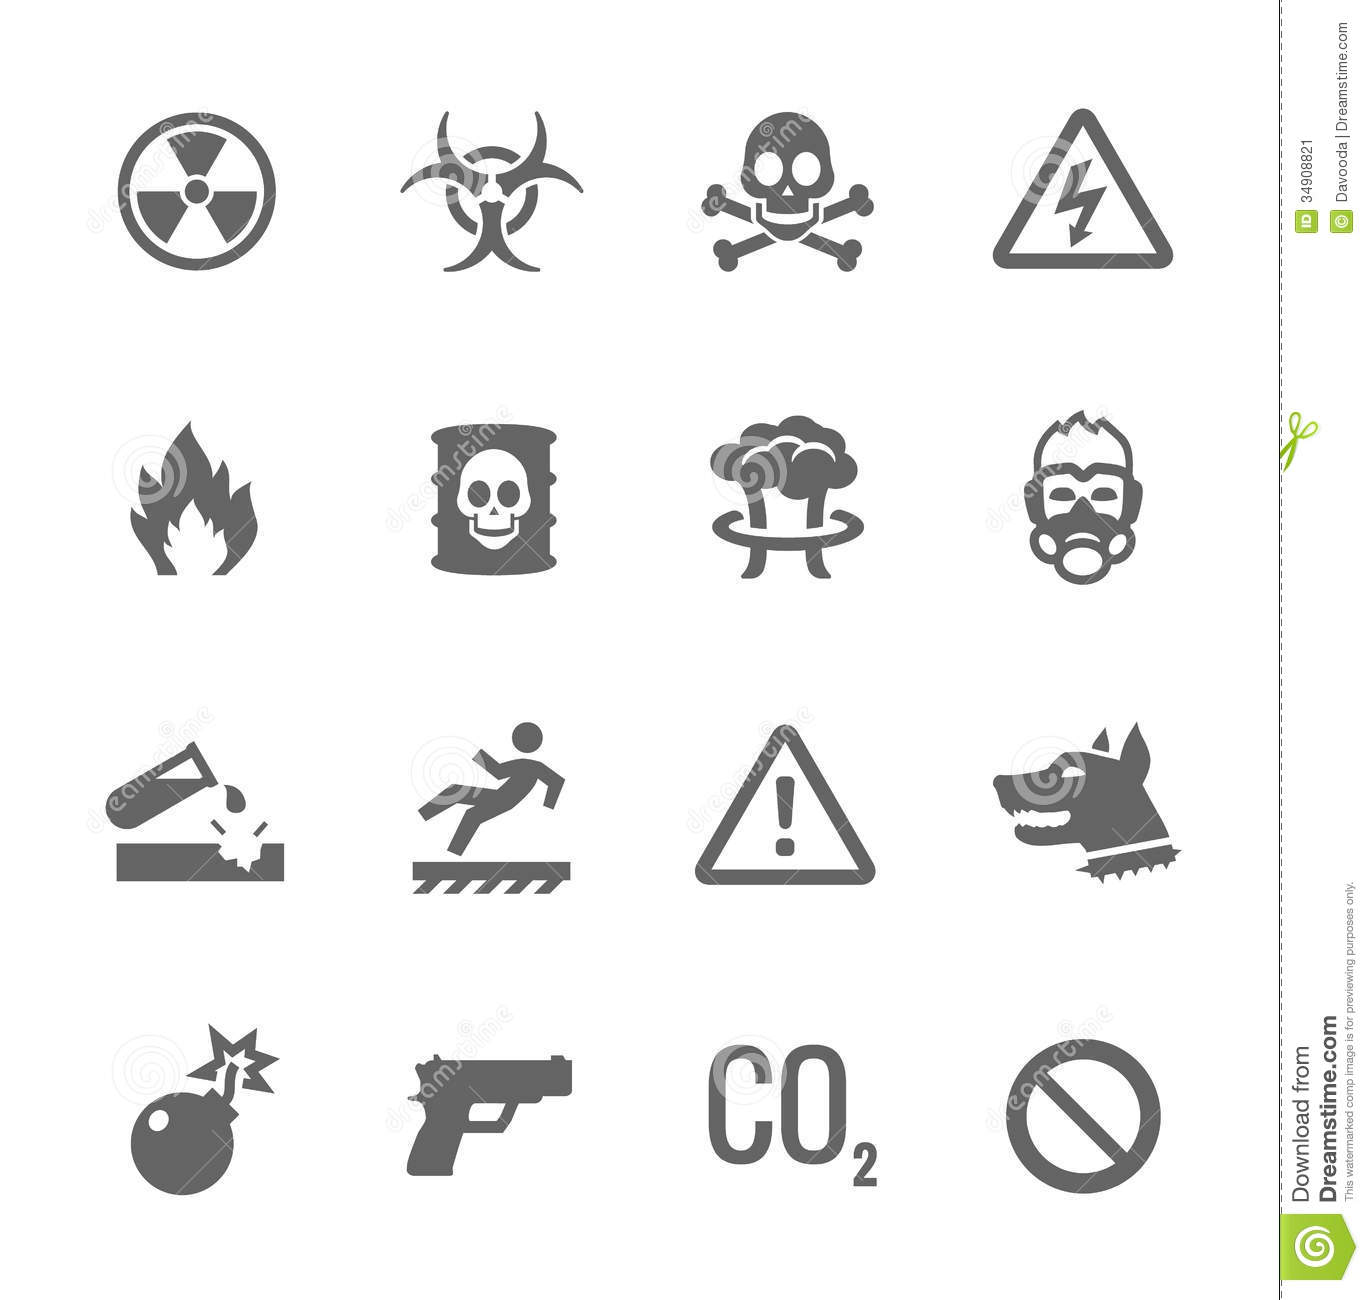 Danger Icons stock vector. Image of construction, image